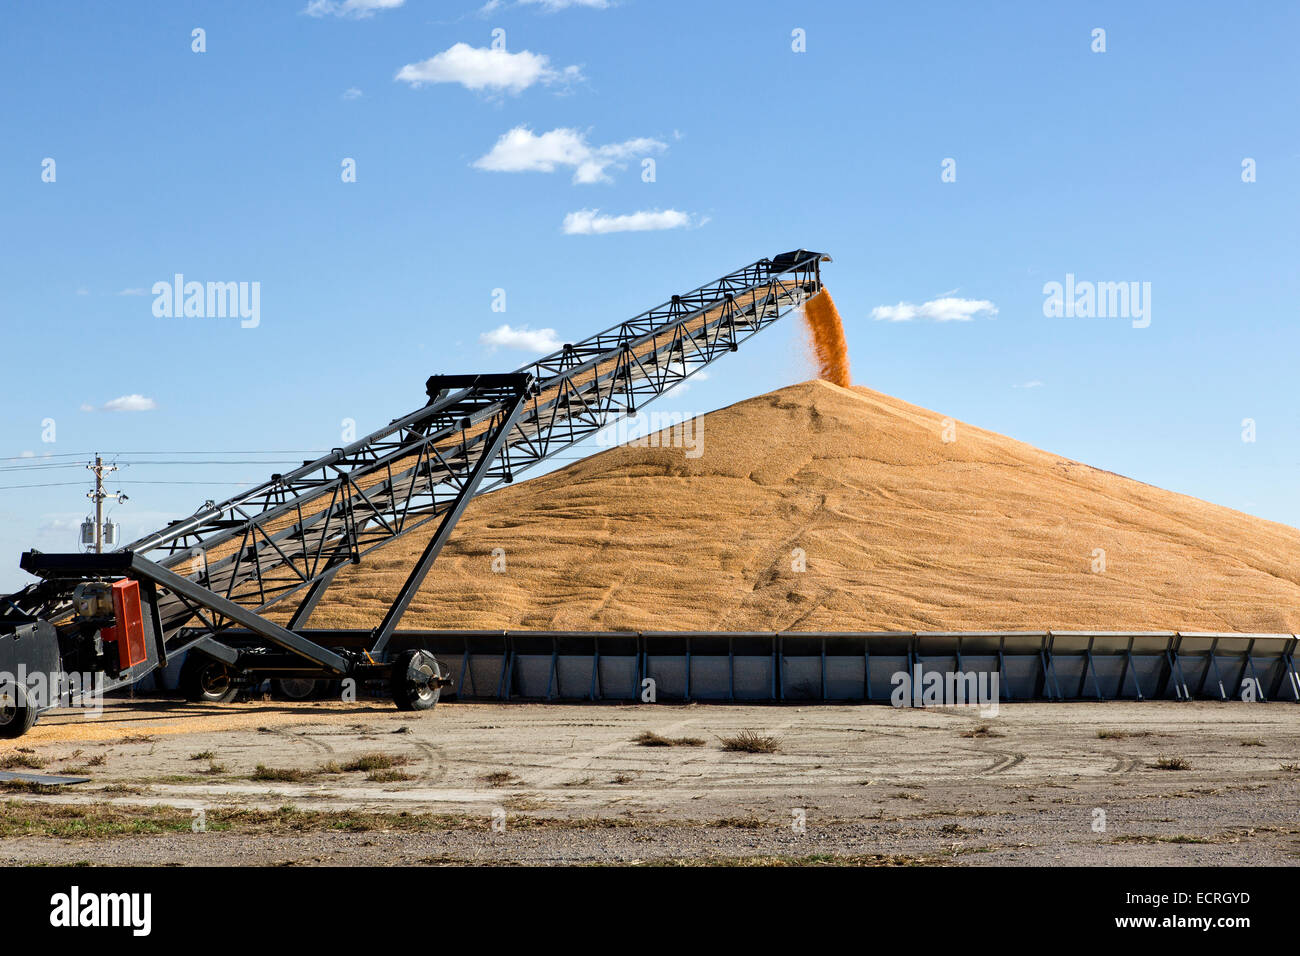 ZTransport conveyor transporting shelled corn into storage bunker. - Stock Image